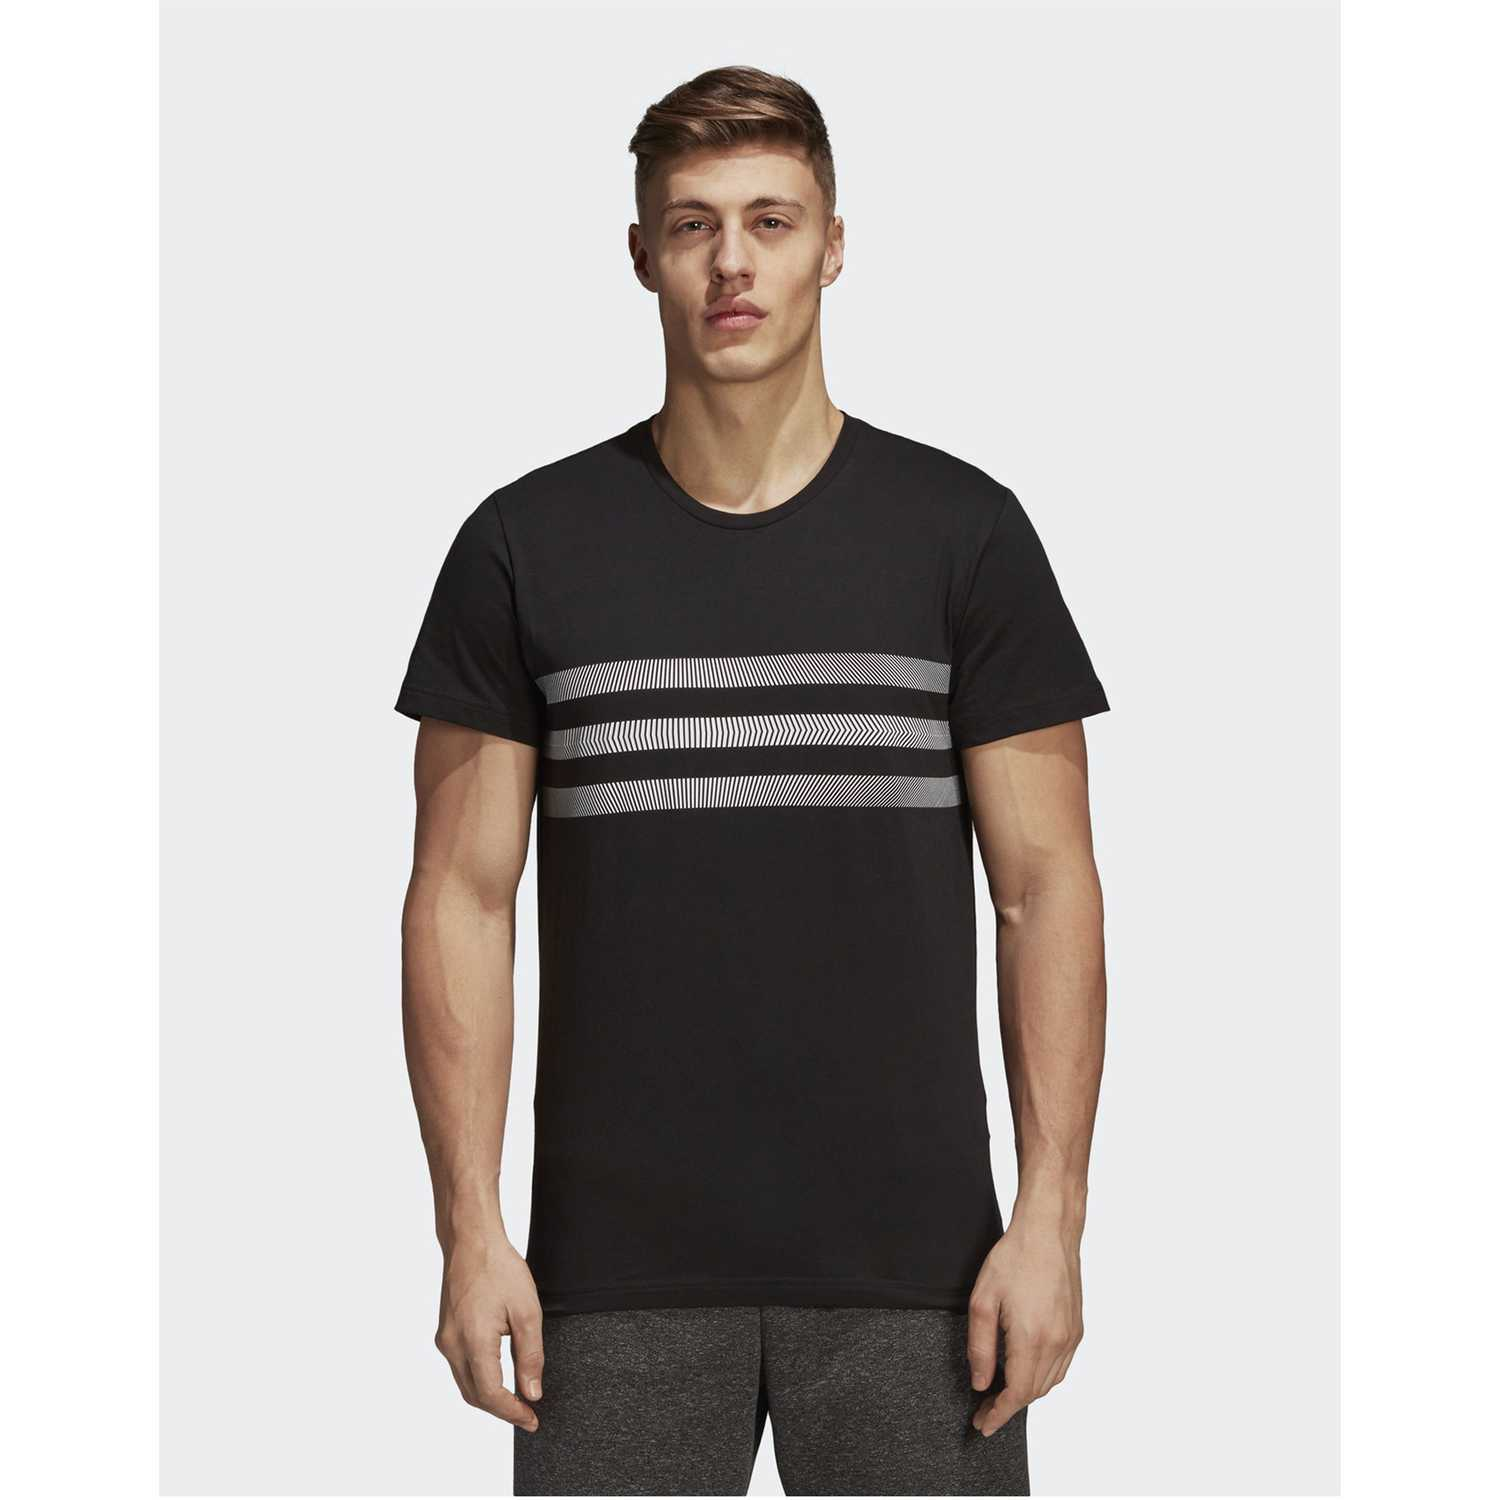 Polo de Hombre Adidas Negro three stripes